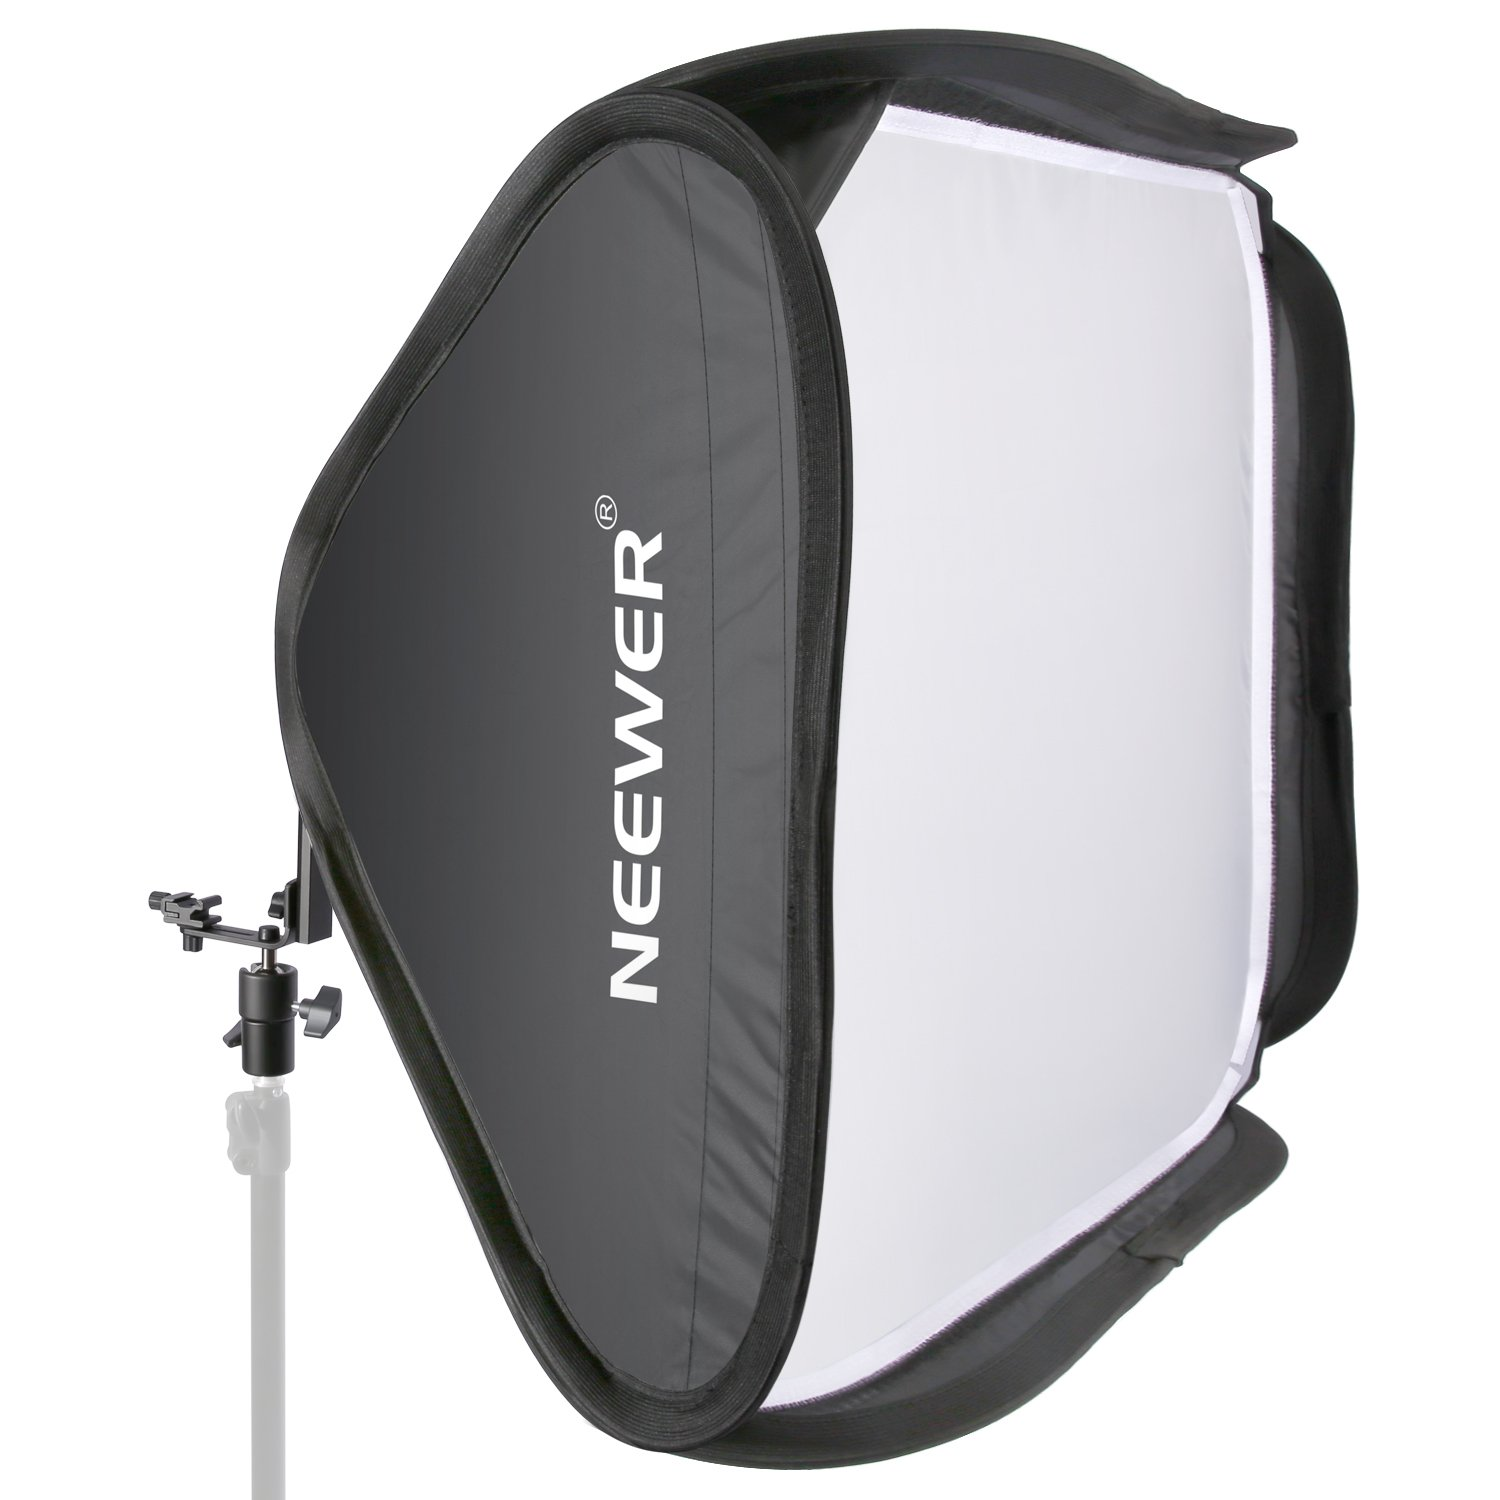 Neewer 24''x24''/60cmx60cm Professional Protable Foldable Off-Camera Flash Photography Studio, Portrait Soft Box with L-shaped bracket & flash Ring, Outer Diffuser and Carrying Case